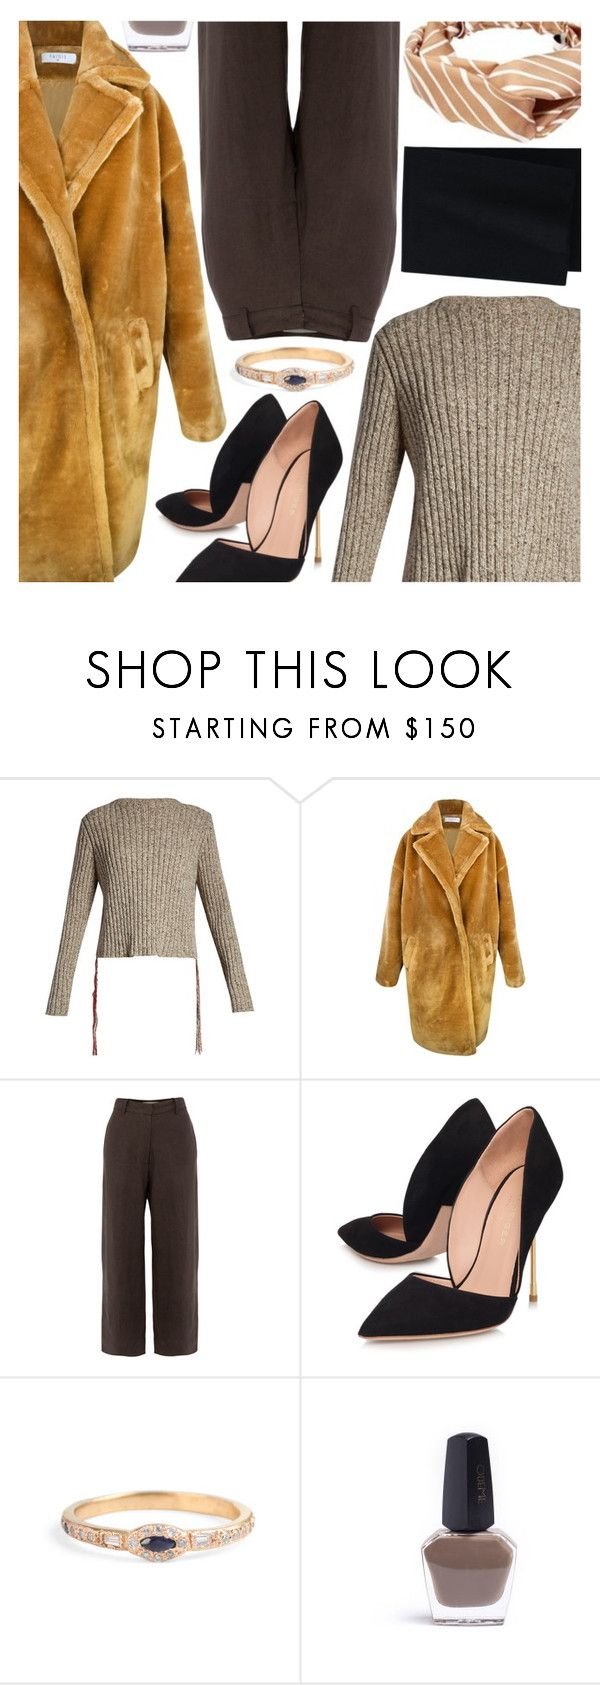 """""""Untitled #6909"""" by amberelb ❤ liked on Polyvore featuring The Row, Paisie, All That Remains, Kurt Geiger and Uniqlo"""